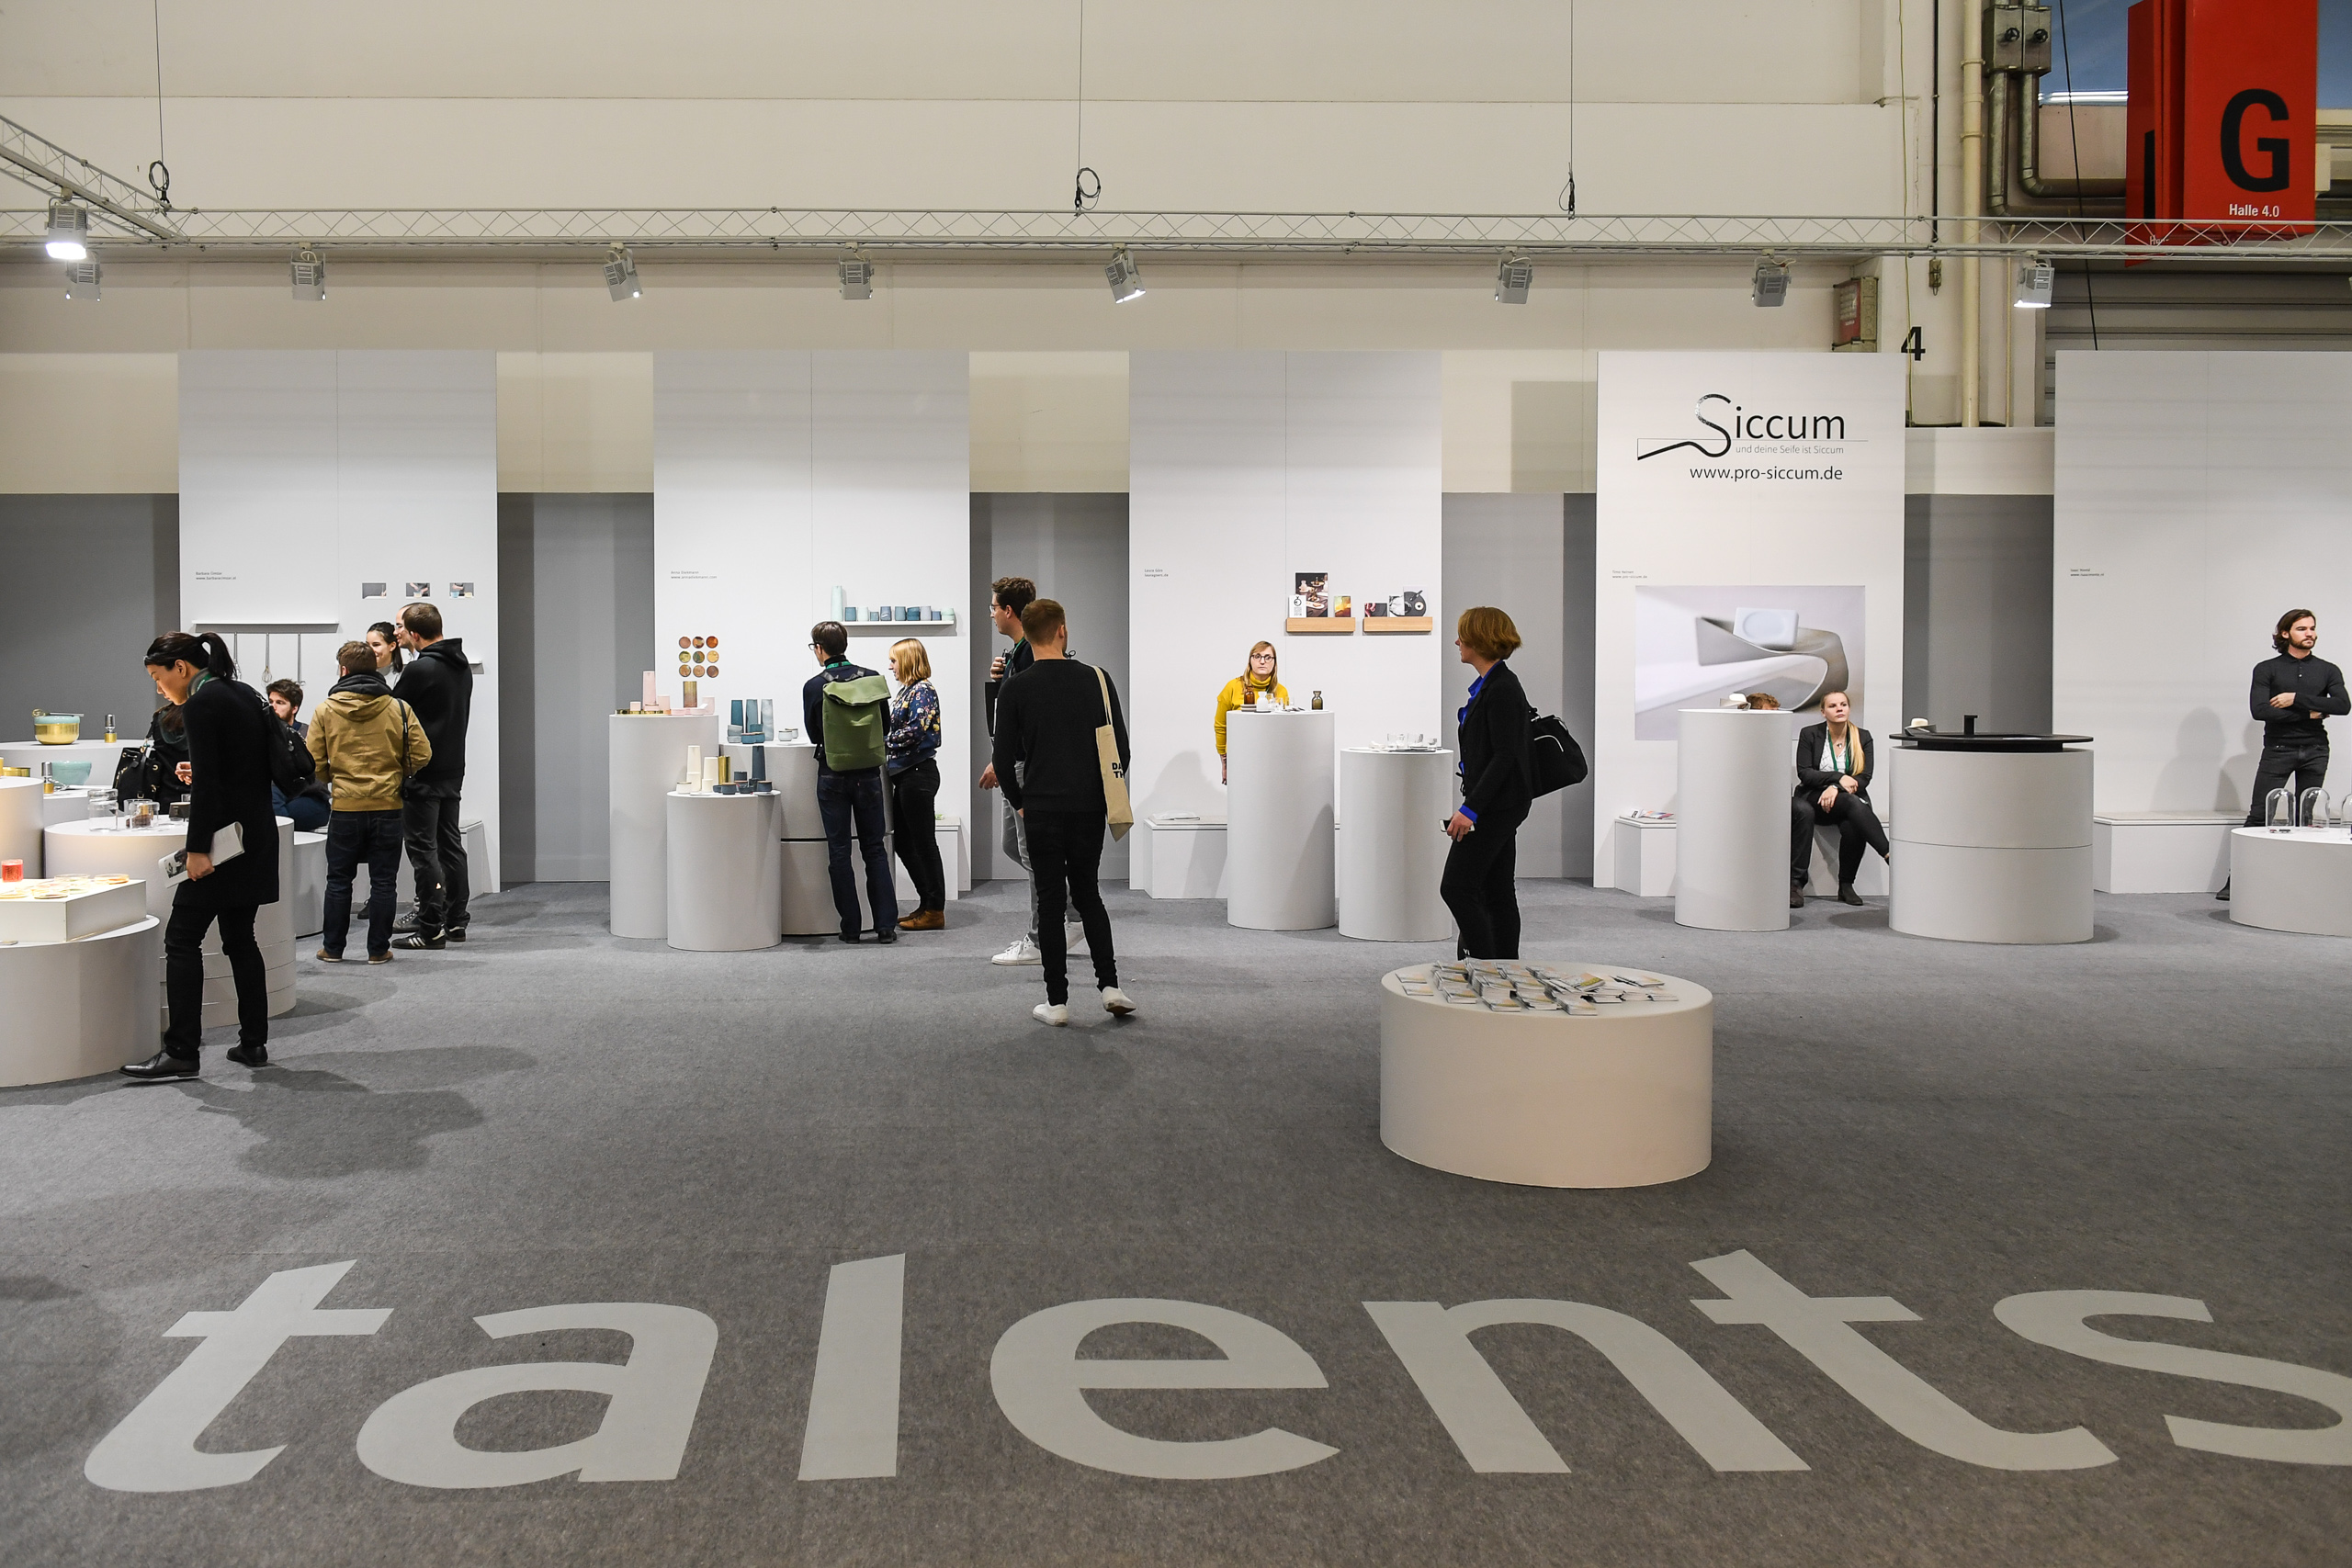 Talents area in Hall 4.0 at Ambiente